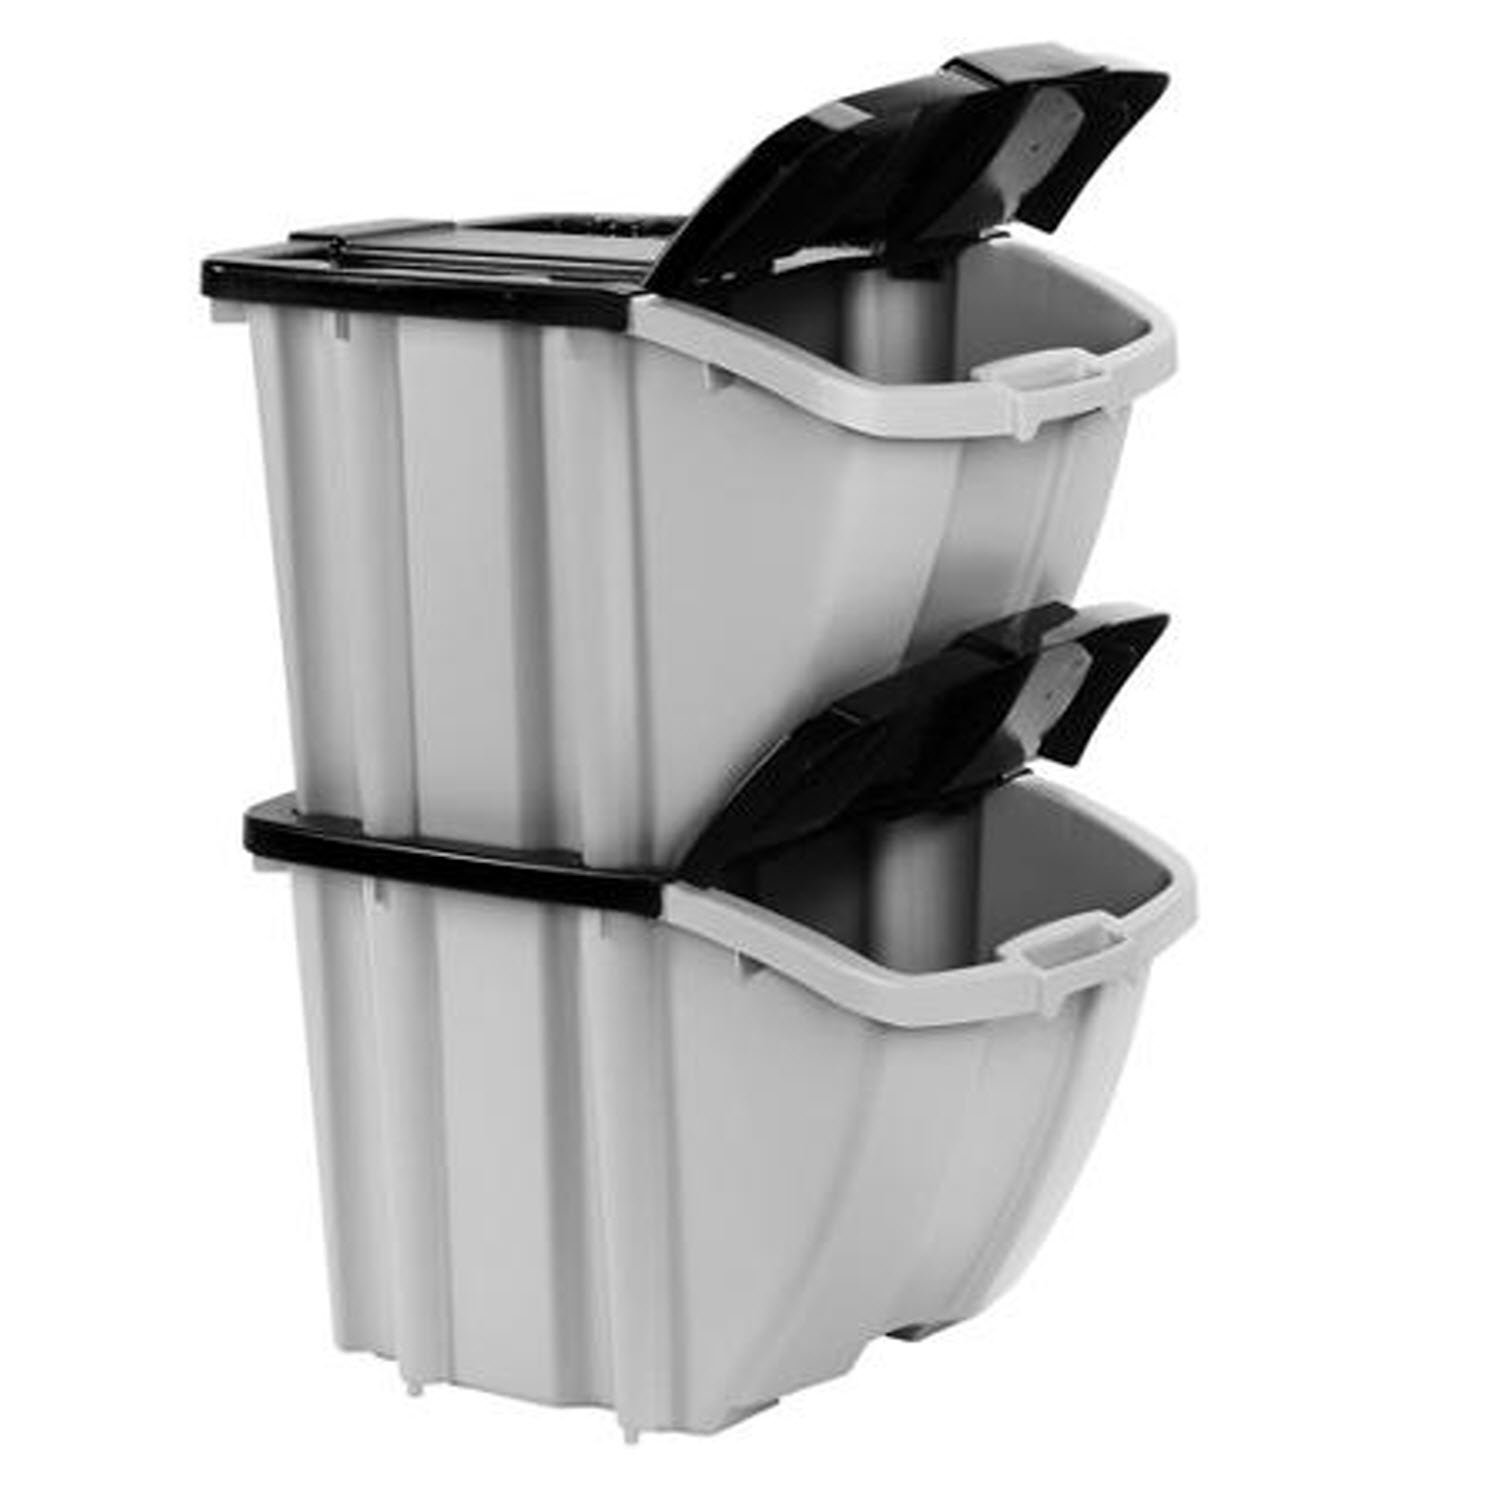 Amazoncom Suncast Stacking Recycling Bins 2 Bin Value Pack